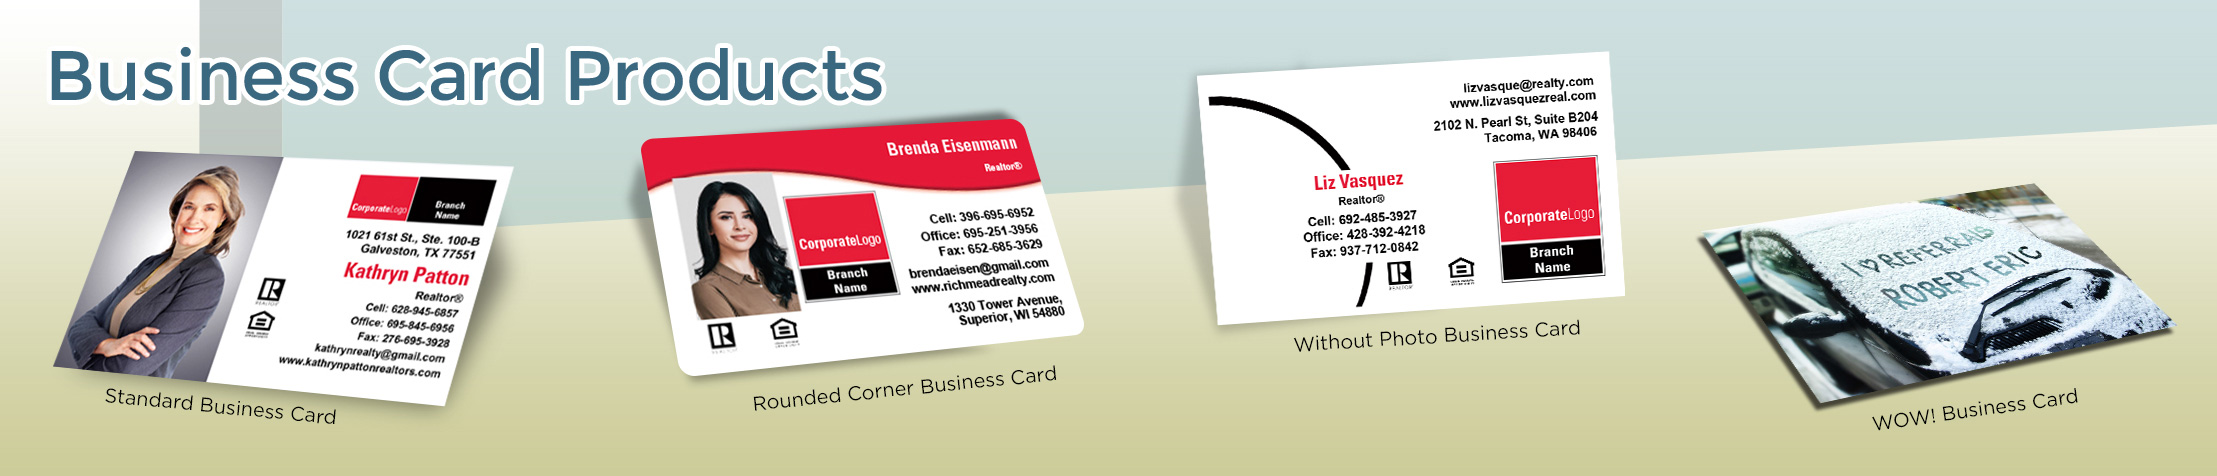 Real Living Real Estate Business Card Products - Real Living  - Unique, Custom Business Cards Printed on Quality Stock with Creative Designs for Realtors | BestPrintBuy.com